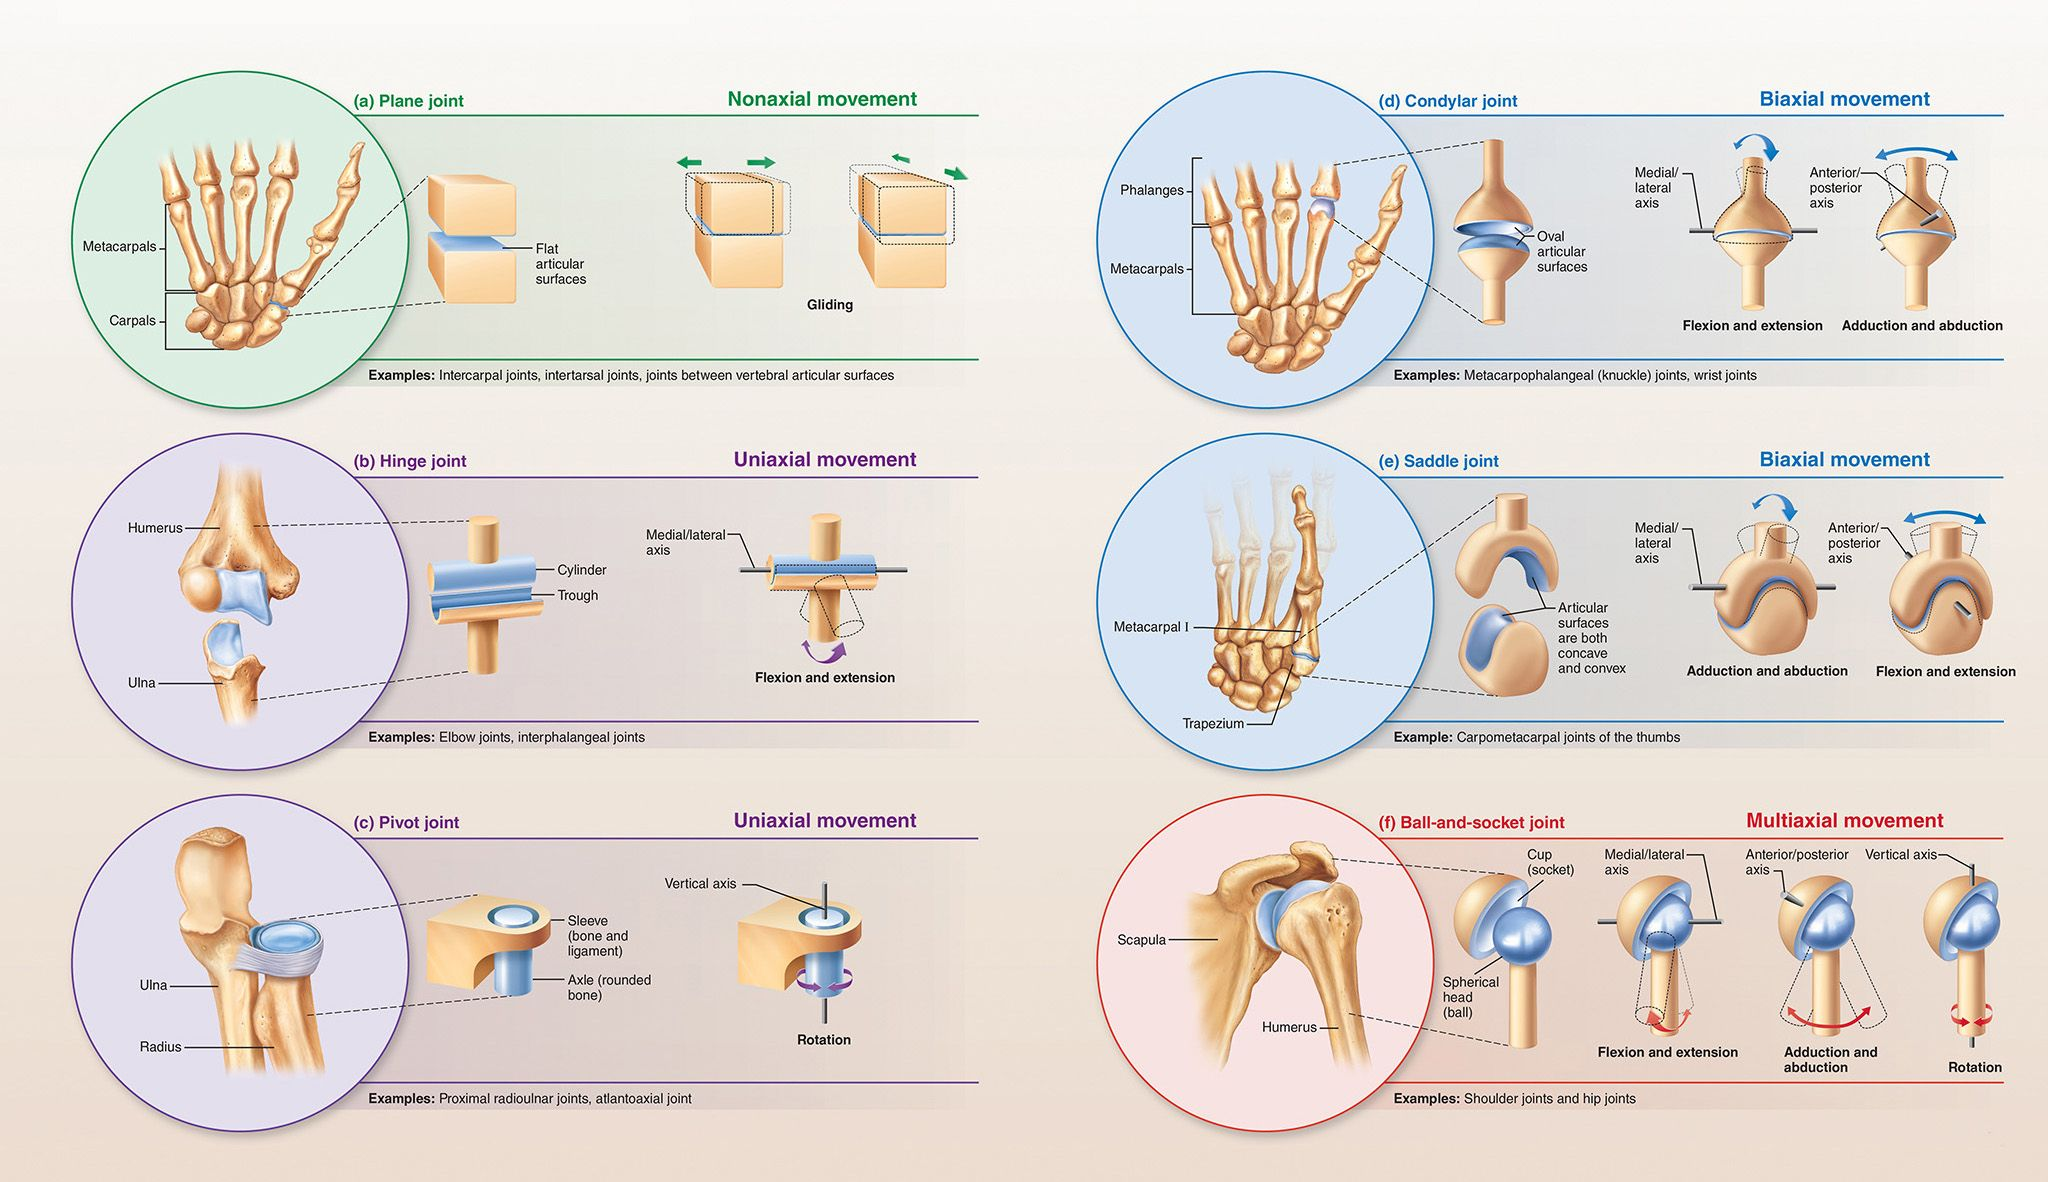 8.4 Synovial joints have a fluid-filled joint cavity: Human Anatomy ...